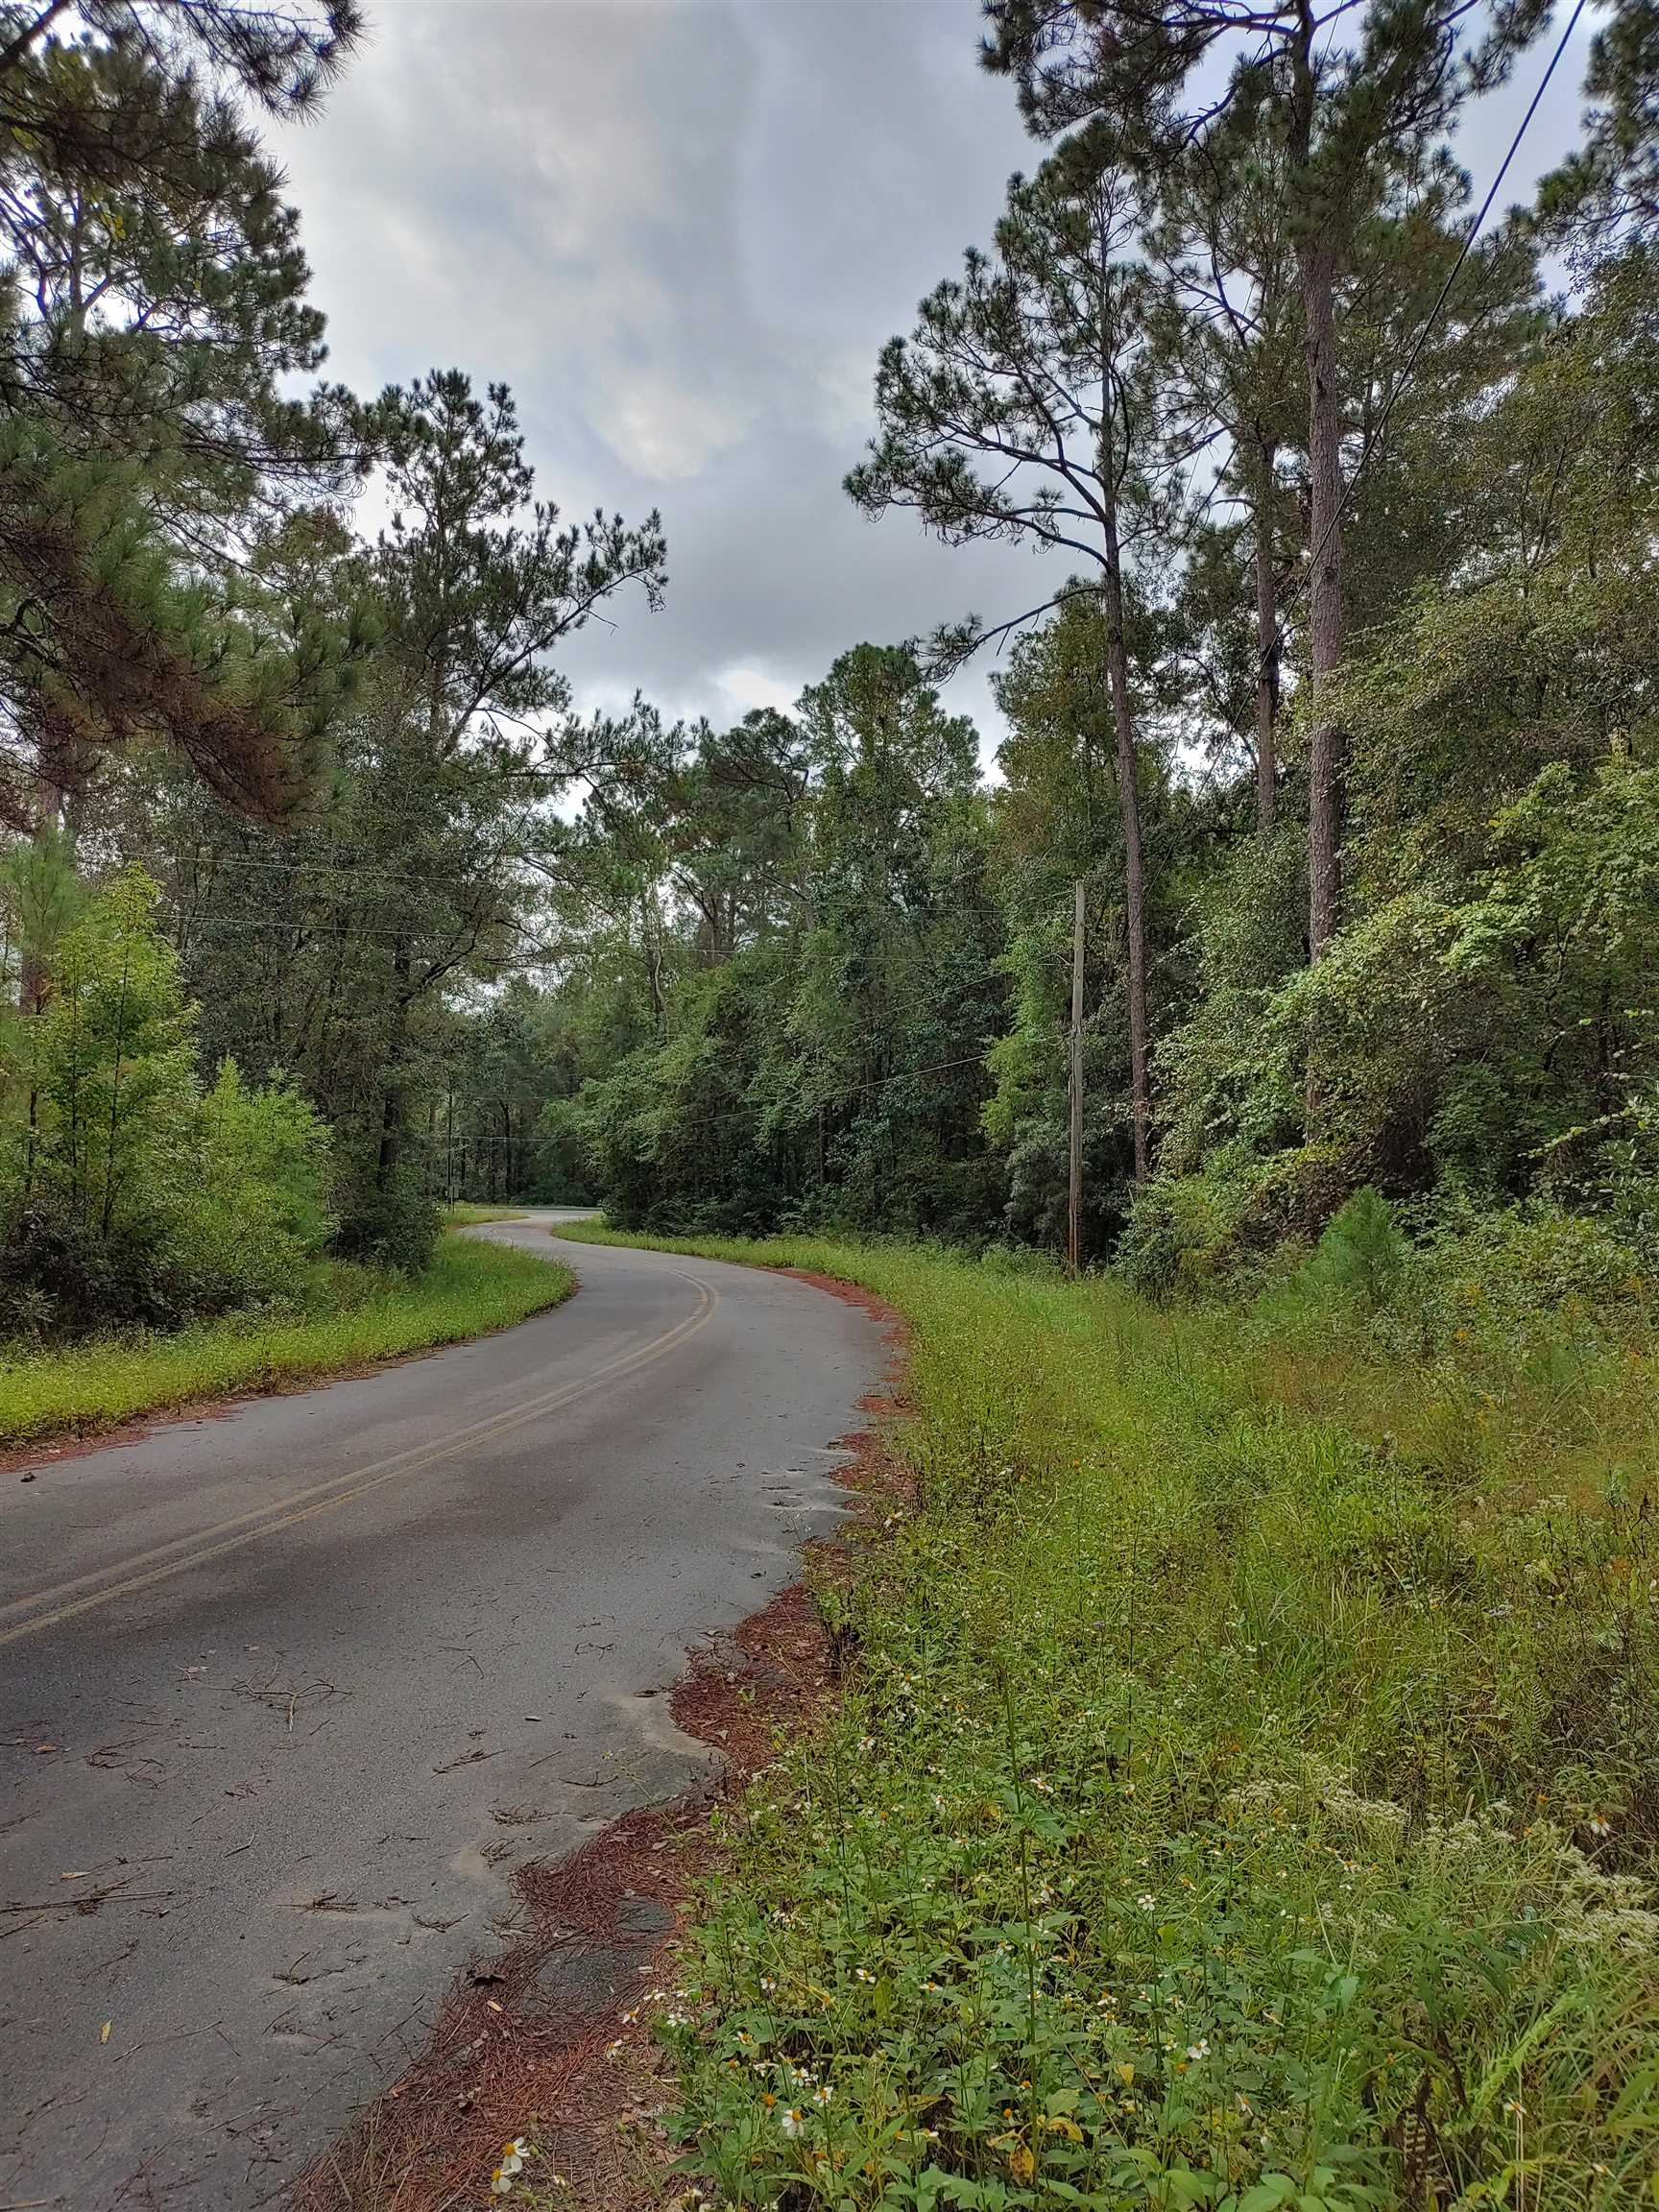 3.44 PRIVATE ACRES READY TO BUILD! CLOSE IN, JUST MINUTES TO NORTH MONROE AND ORCHARD POND PARKWAY.MOBILE HOMES ALLOWED.OLD MOBILE HOME HAS NO VALUE.